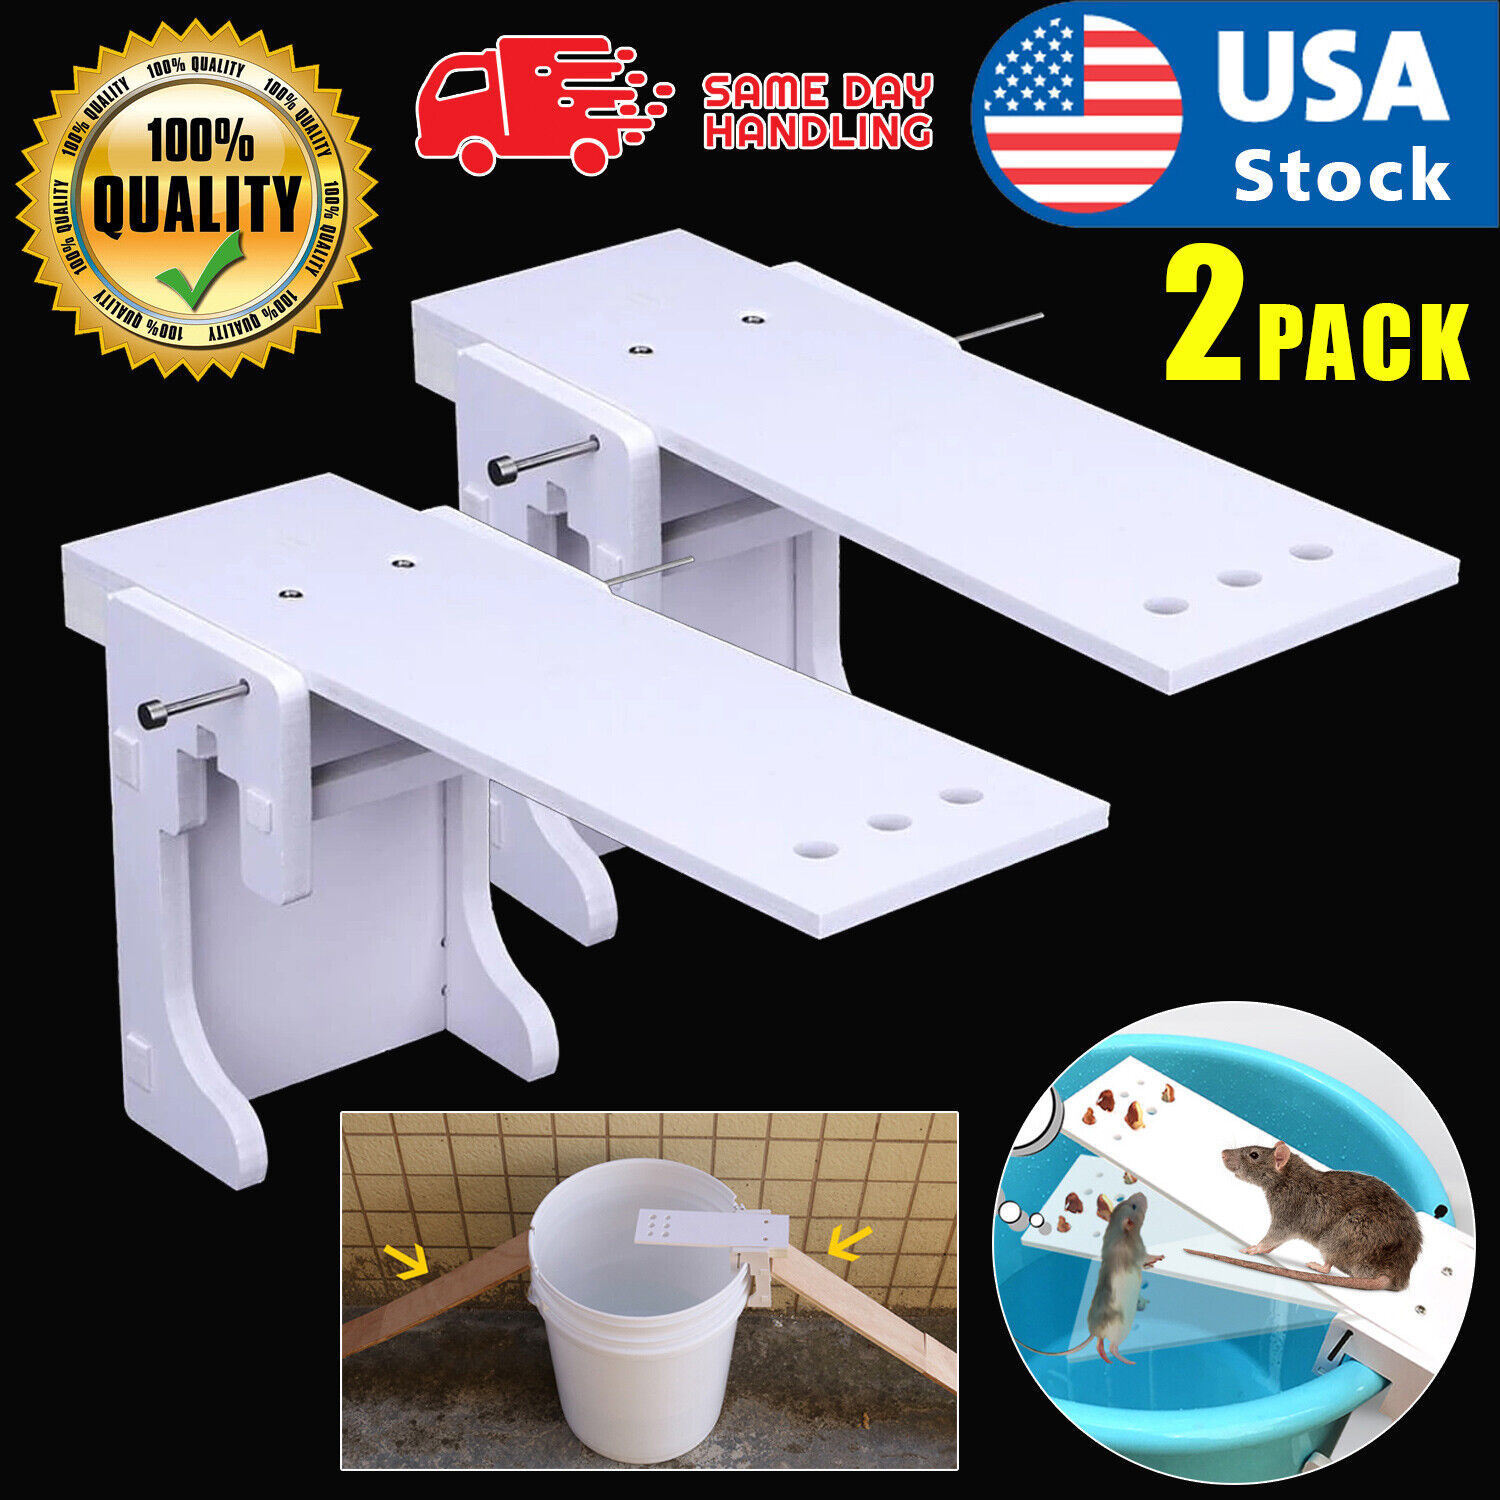 Walk The Plank Mouse Trap Rodent Bucket Trap Rat Auto Reset Humane Mice Catcher Animal & Rodent Control